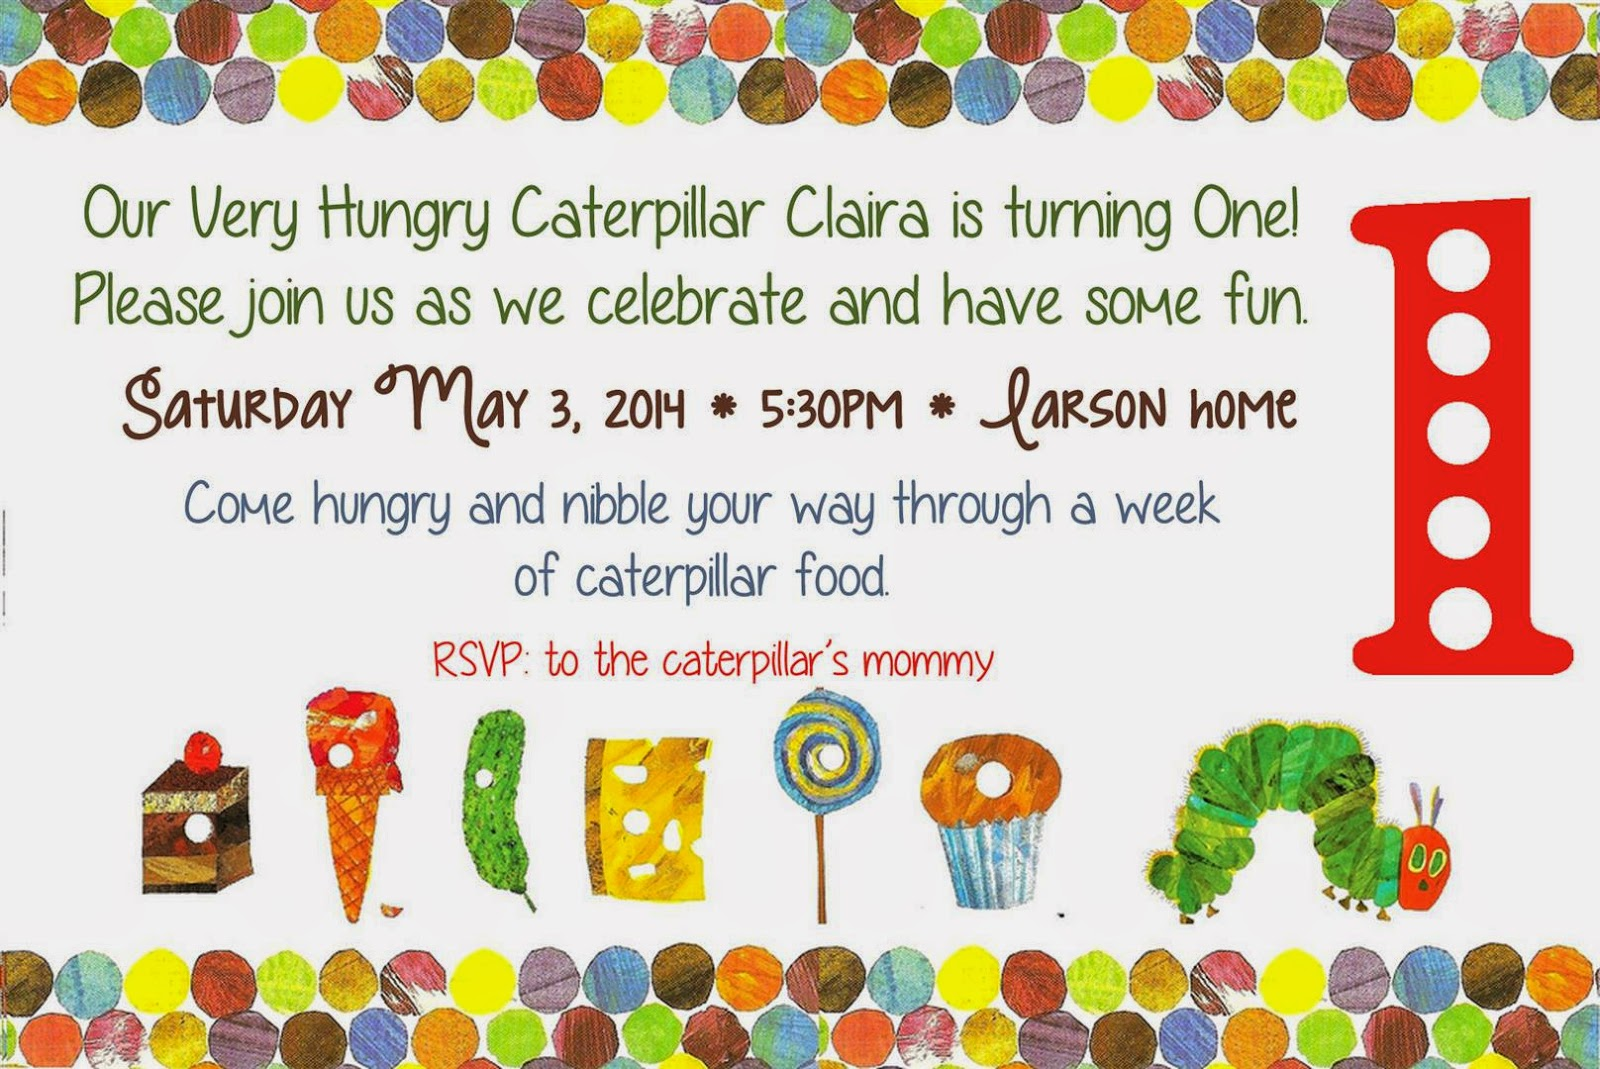 Patty Cakes Bakery: The Very Hungry Caterpillar 1st Birthday